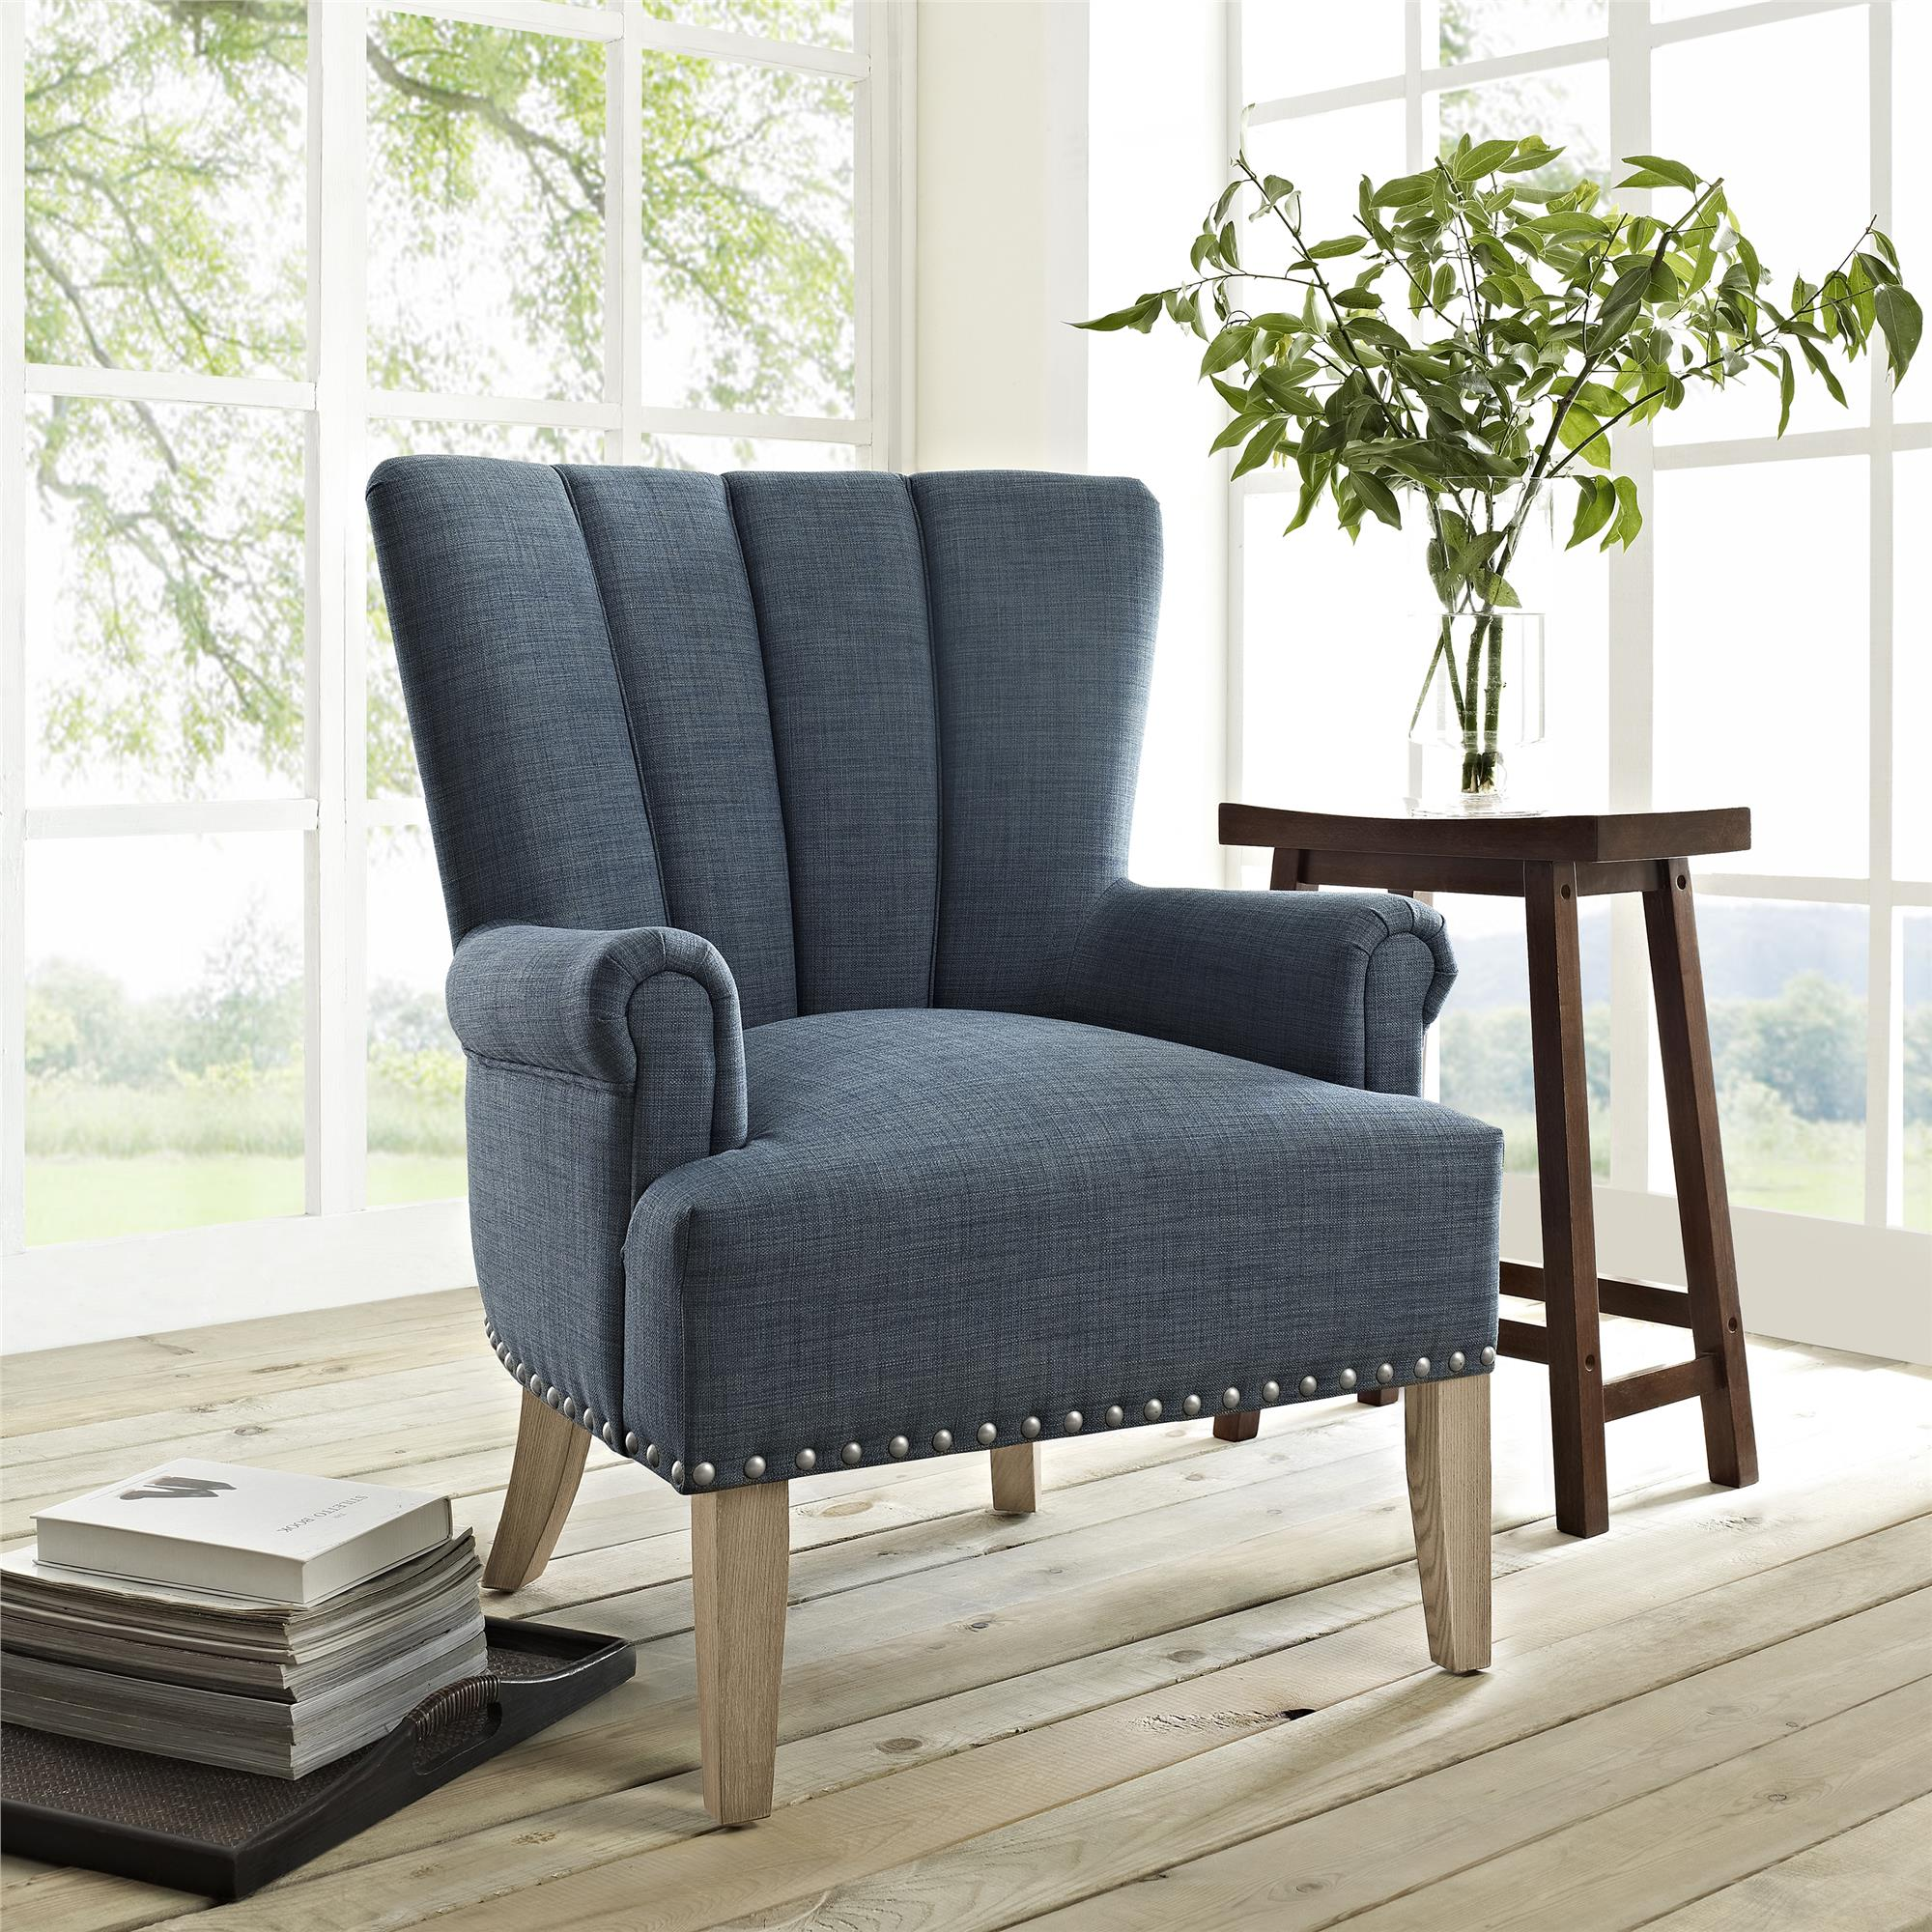 the terrific amazing grey living room armchair chair navy print accent studded royal blue chairs black and tan stacking office gold velvet sofa beautiful furniture adjustable